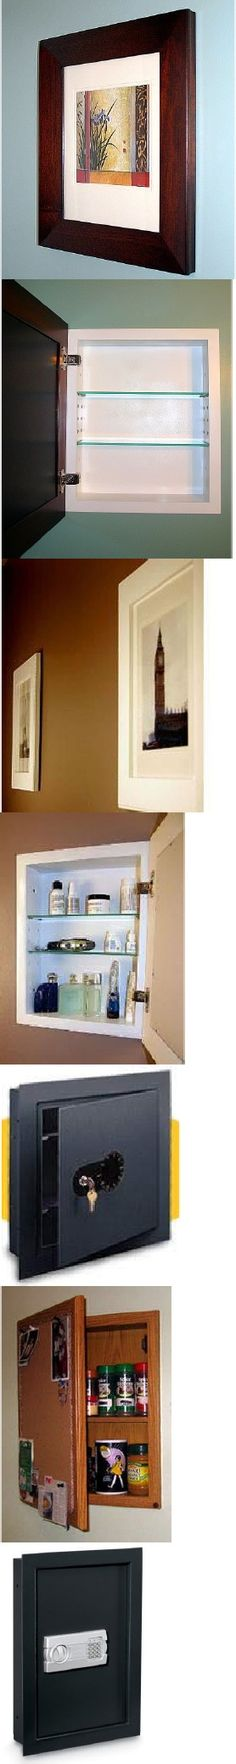 Get an old medicine cabinet.  Sink it into the wall in your bedroom area.  Then hinge a picture over the front of it.  Hidden storage.